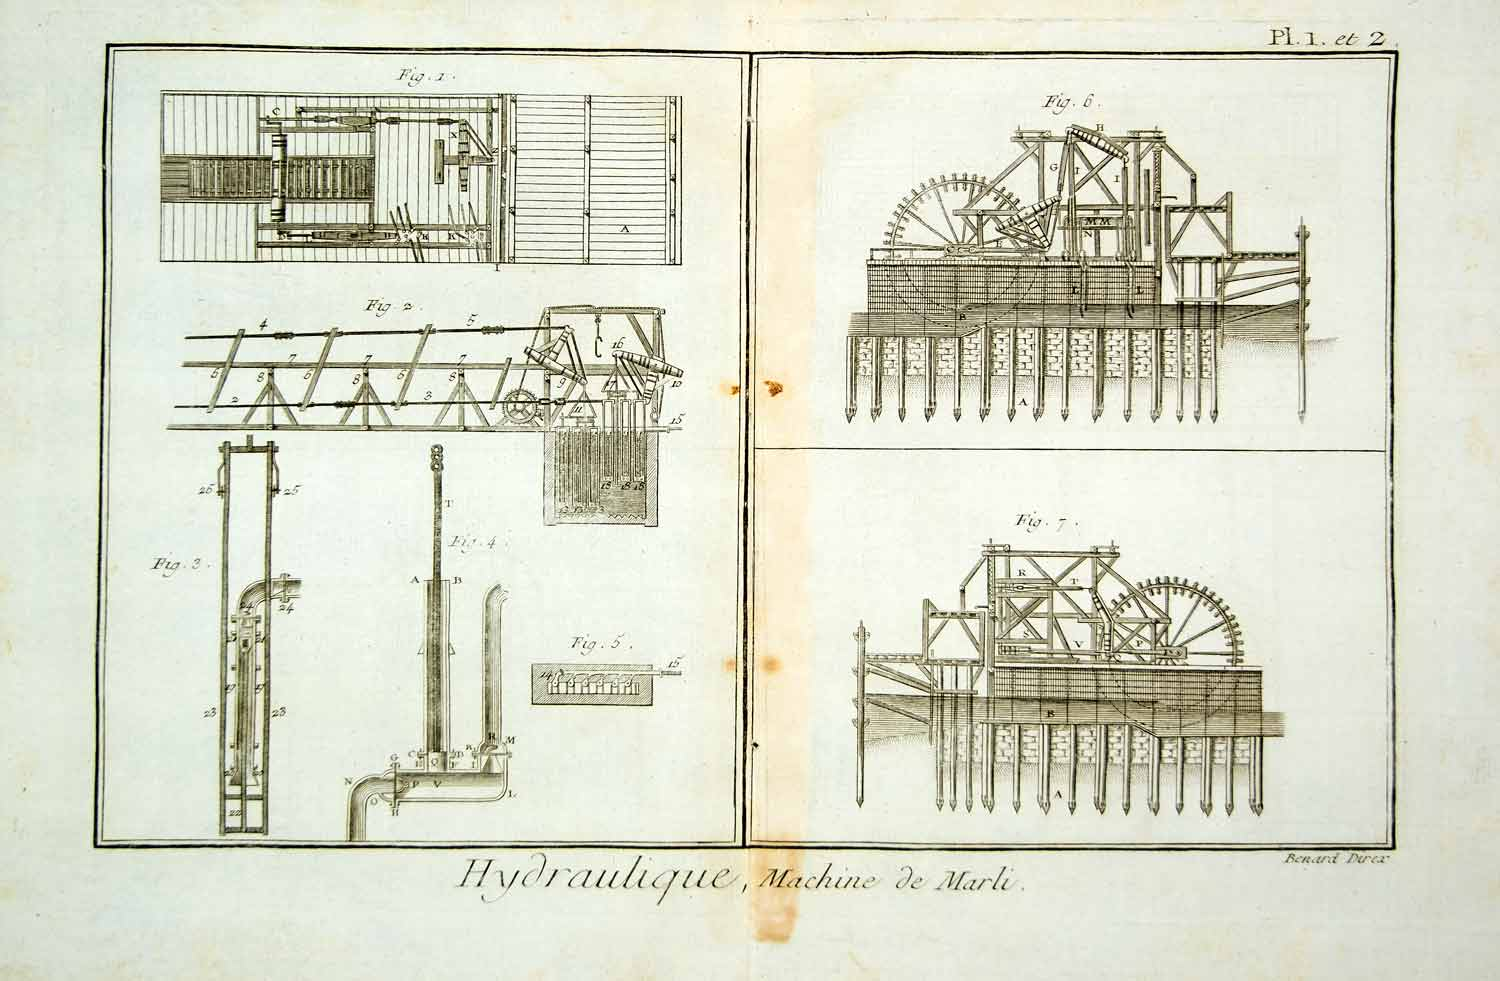 1778 Copper Engraving Machine de Marly Hydraulics Diderot Antique Print DDR1